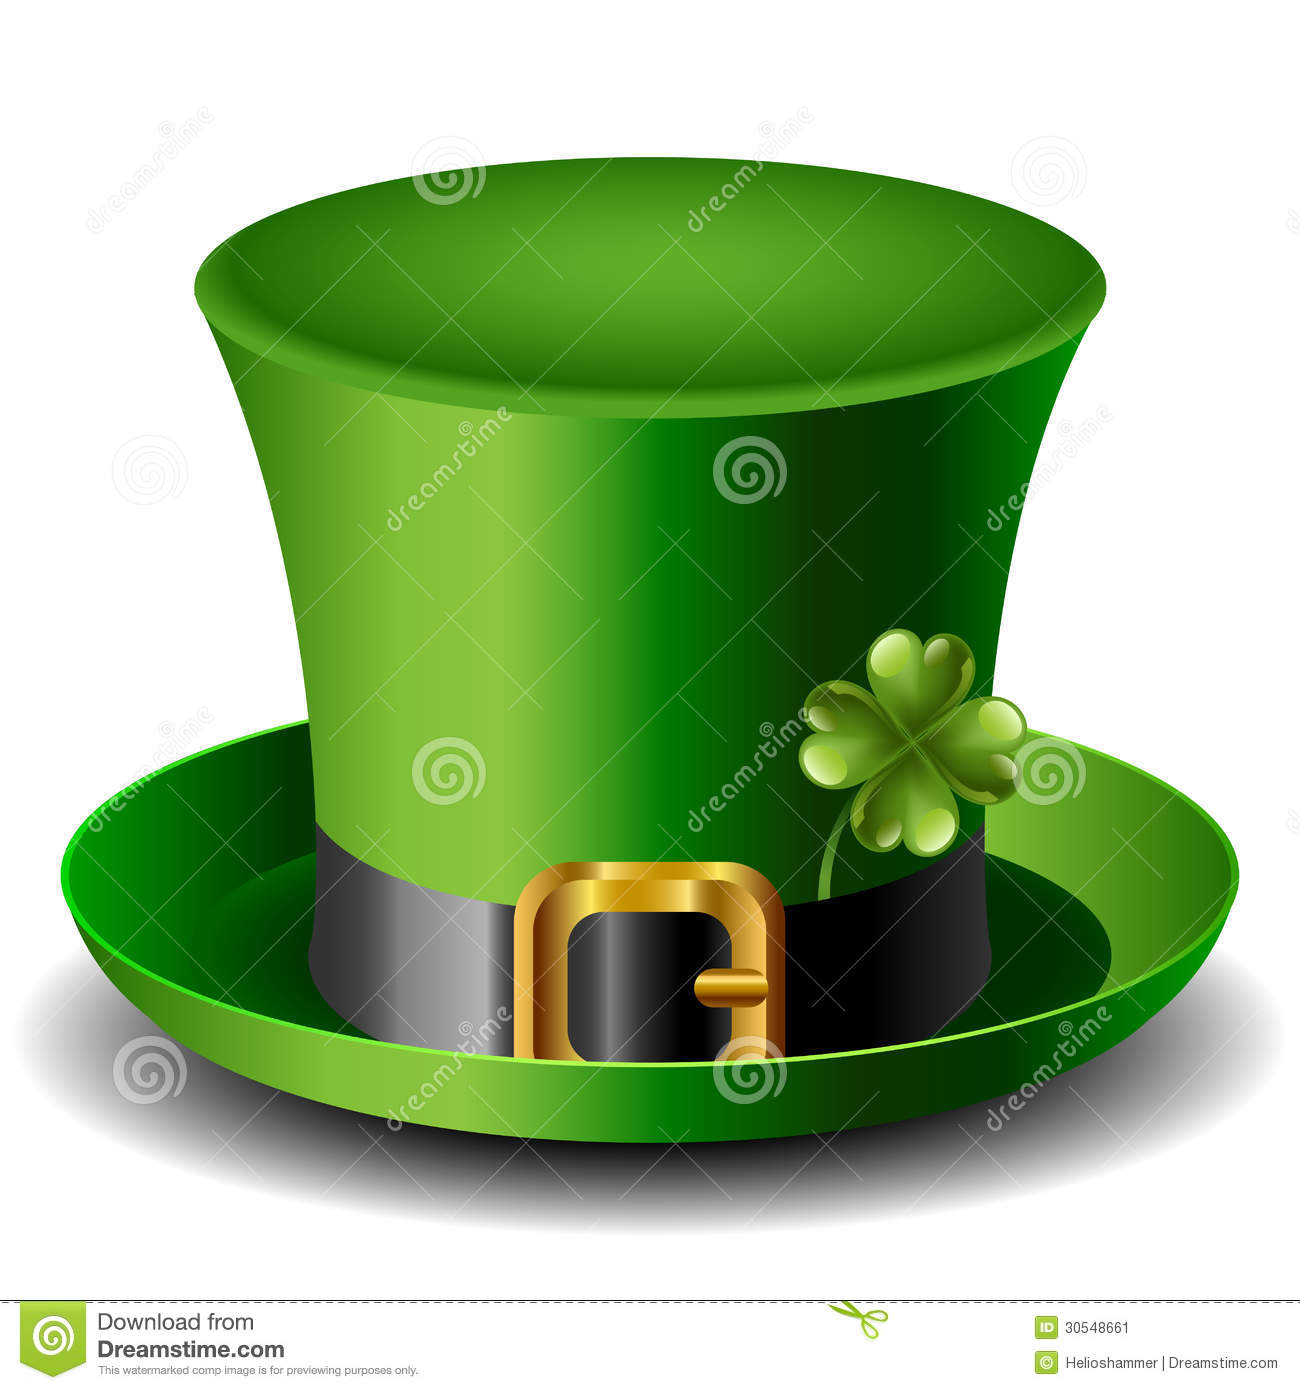 St Patricks Day Hat With Clover Stock Image - Image: 30548661